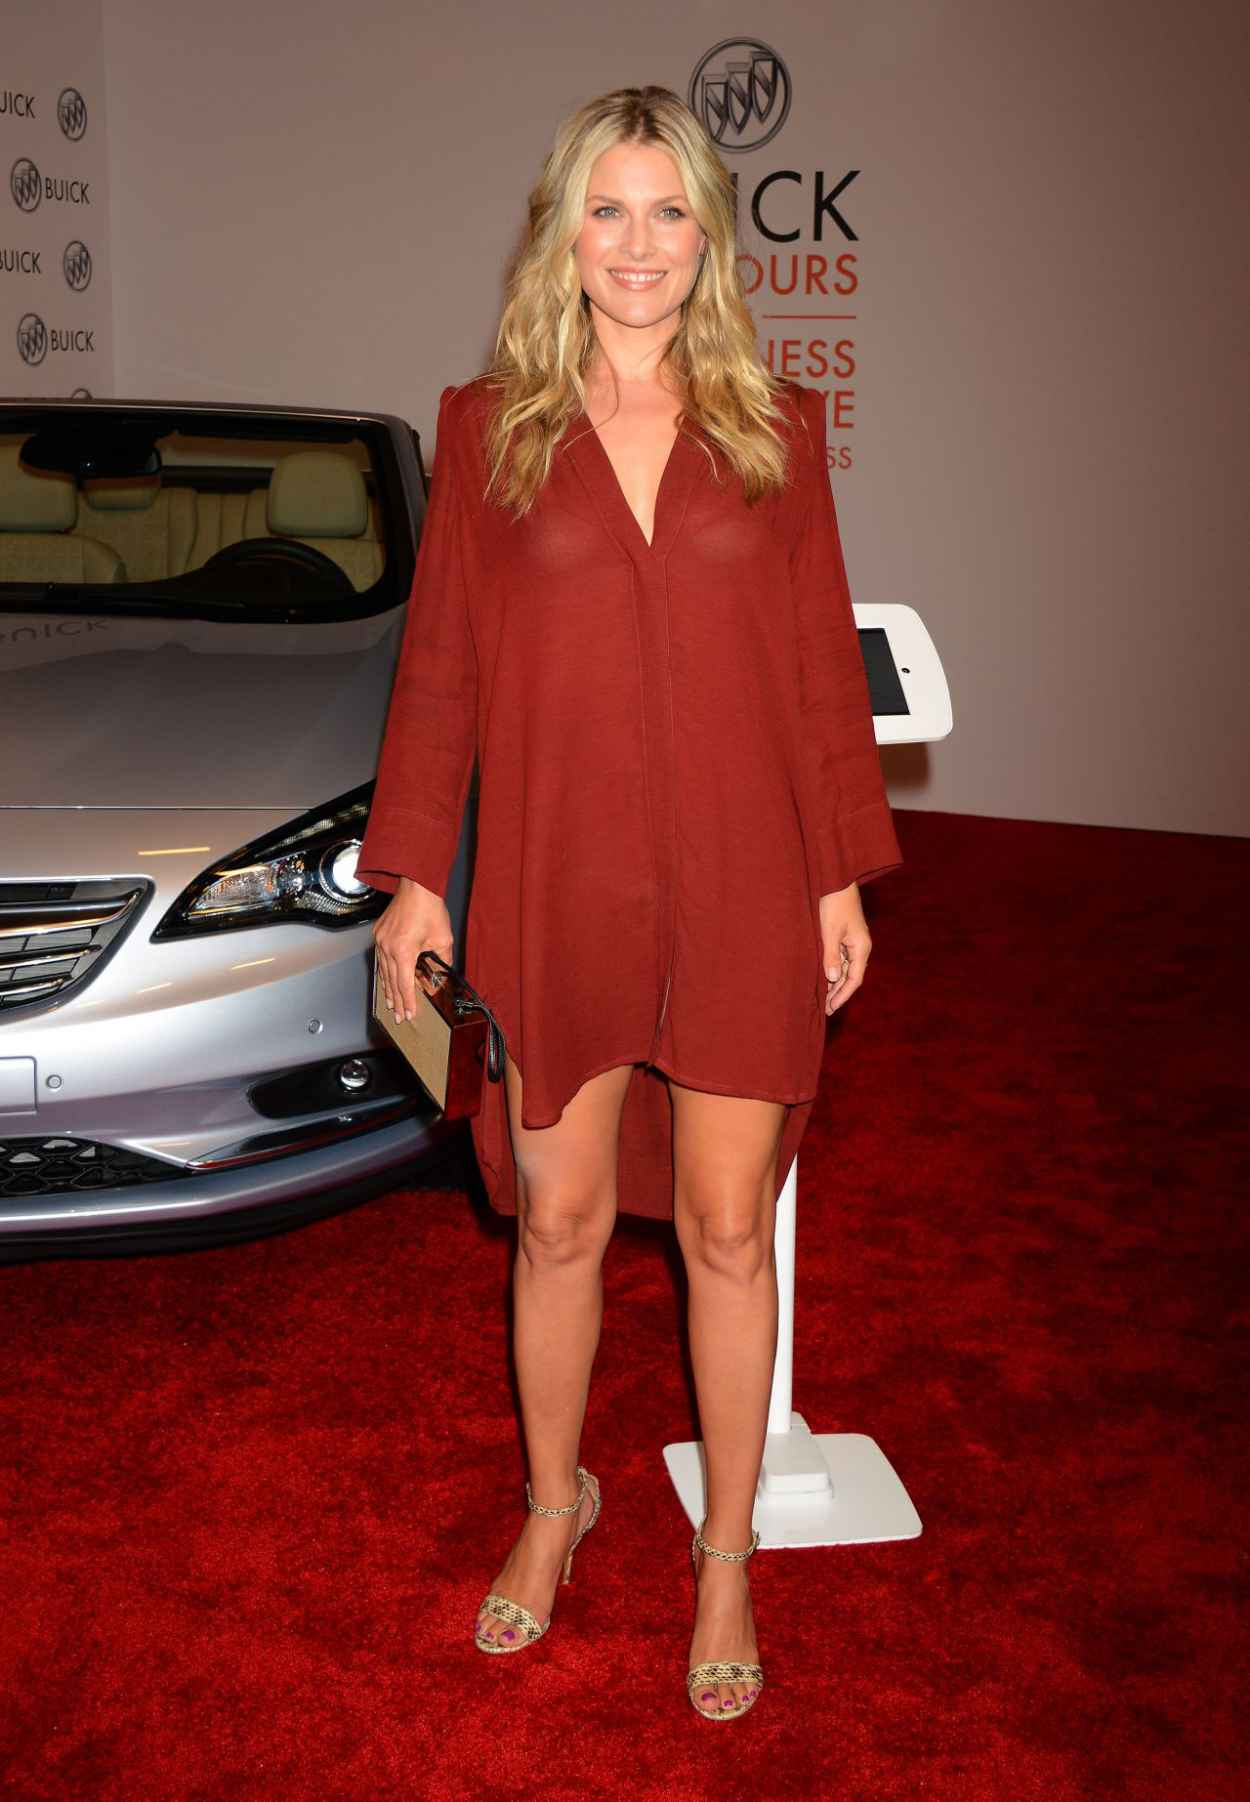 Ali Larter - 24 Hours of Happiness Test Drive Event at Ace Museum in Los Angeles-2